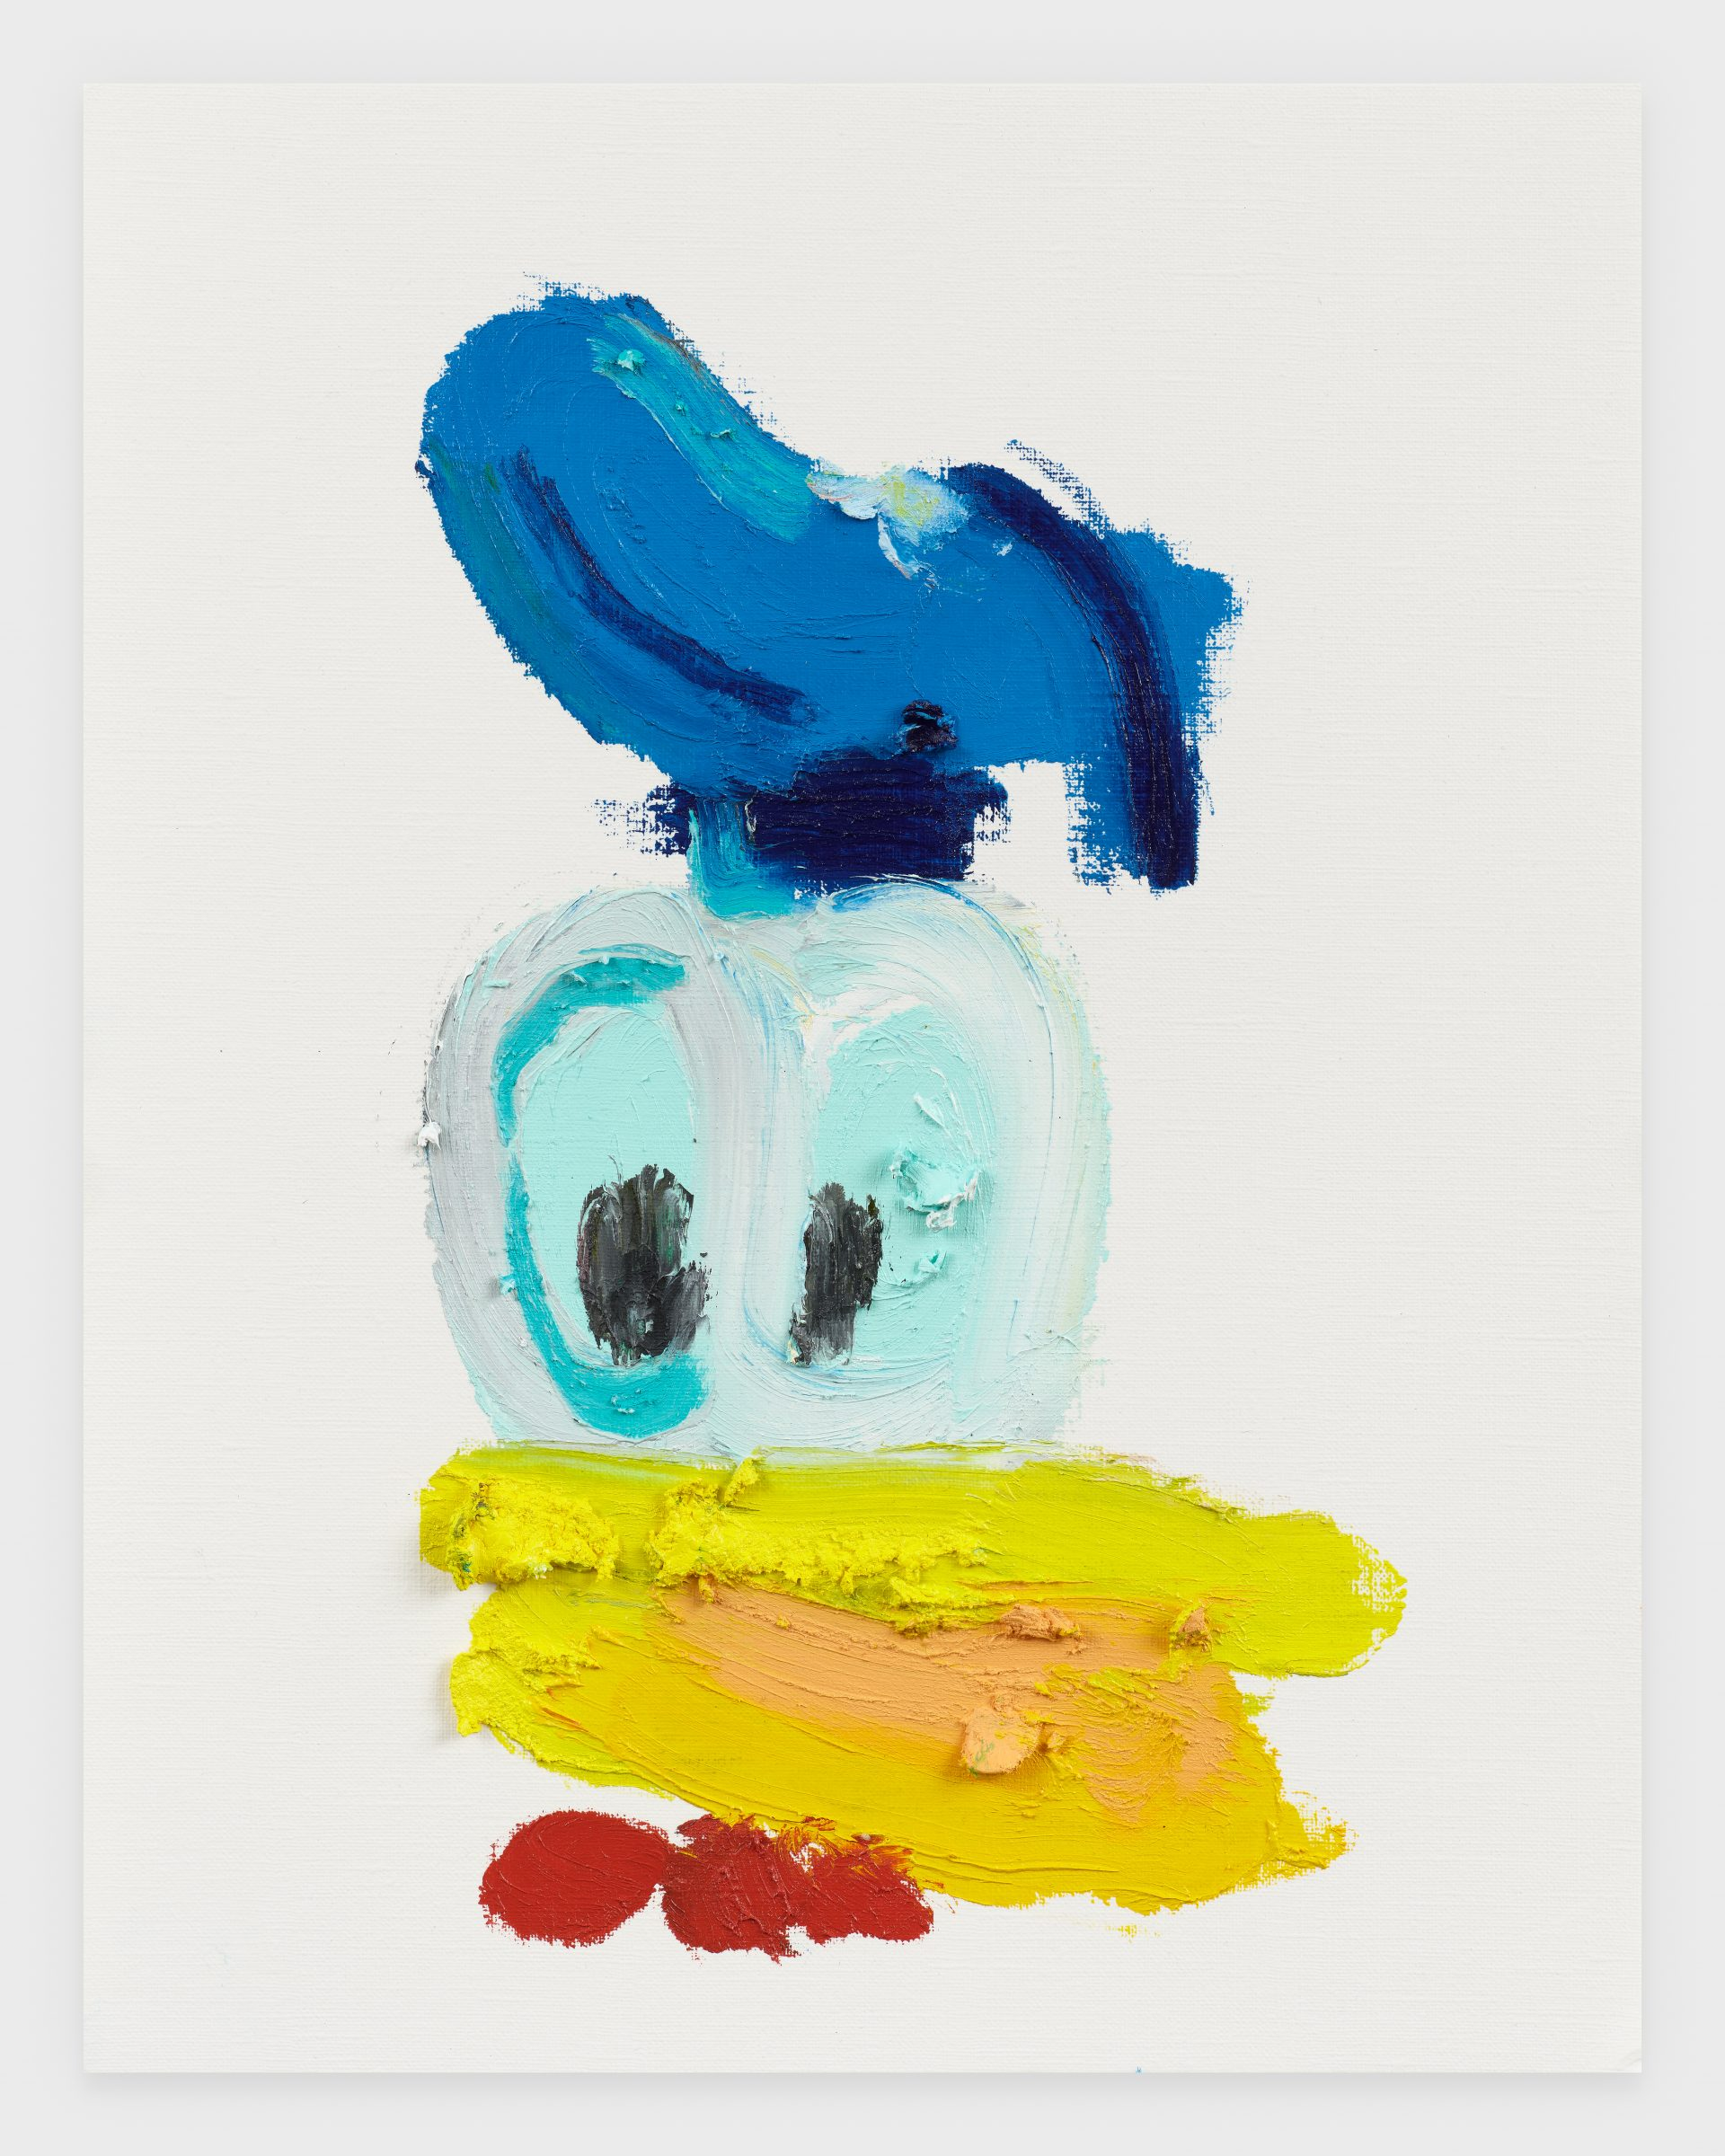 Donal Duck II, 2020, Oil stick on archival paper, 11 x 14 inches